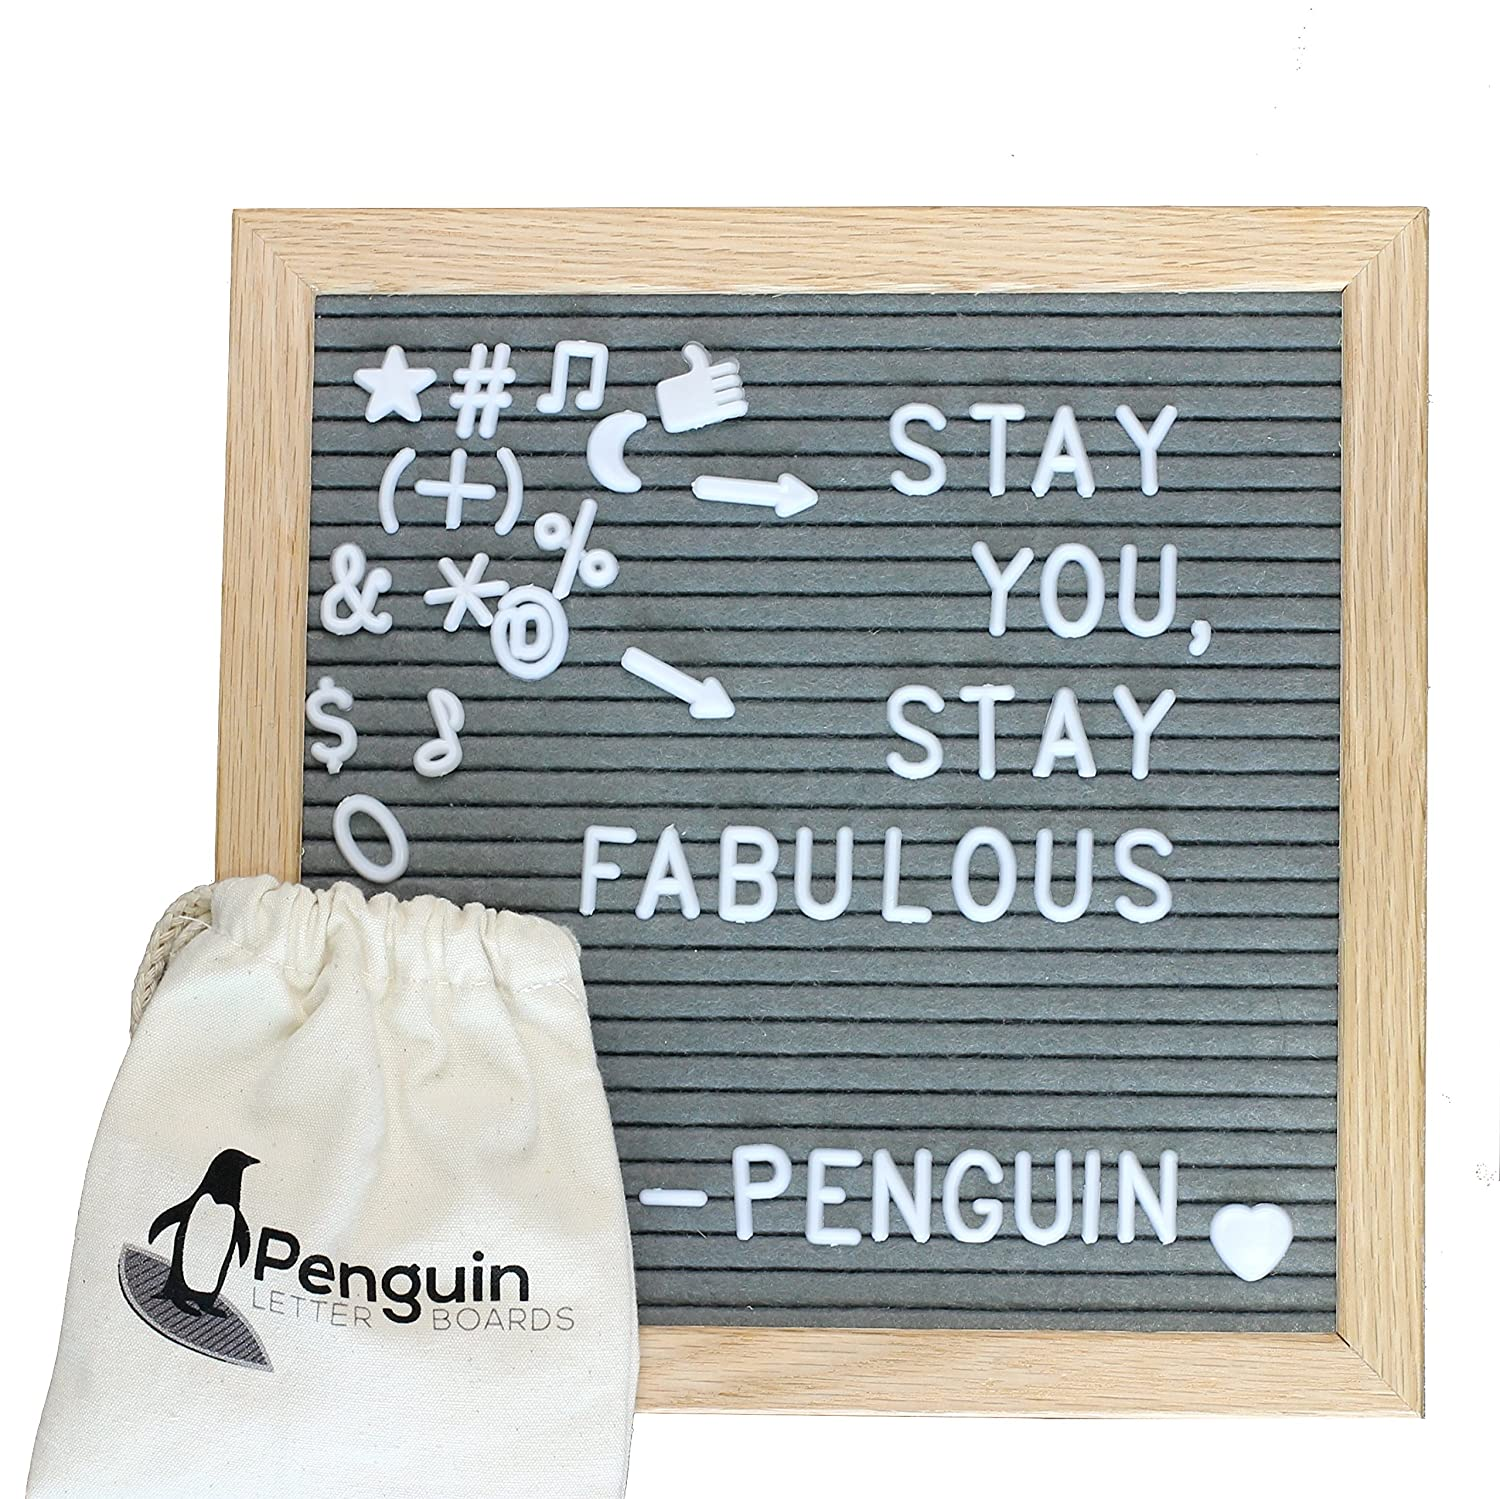 Felt Letter Board 10x10 with Letters – Felt Board with Letters/Message Board Includes 340 Felt Board Letters Zeque